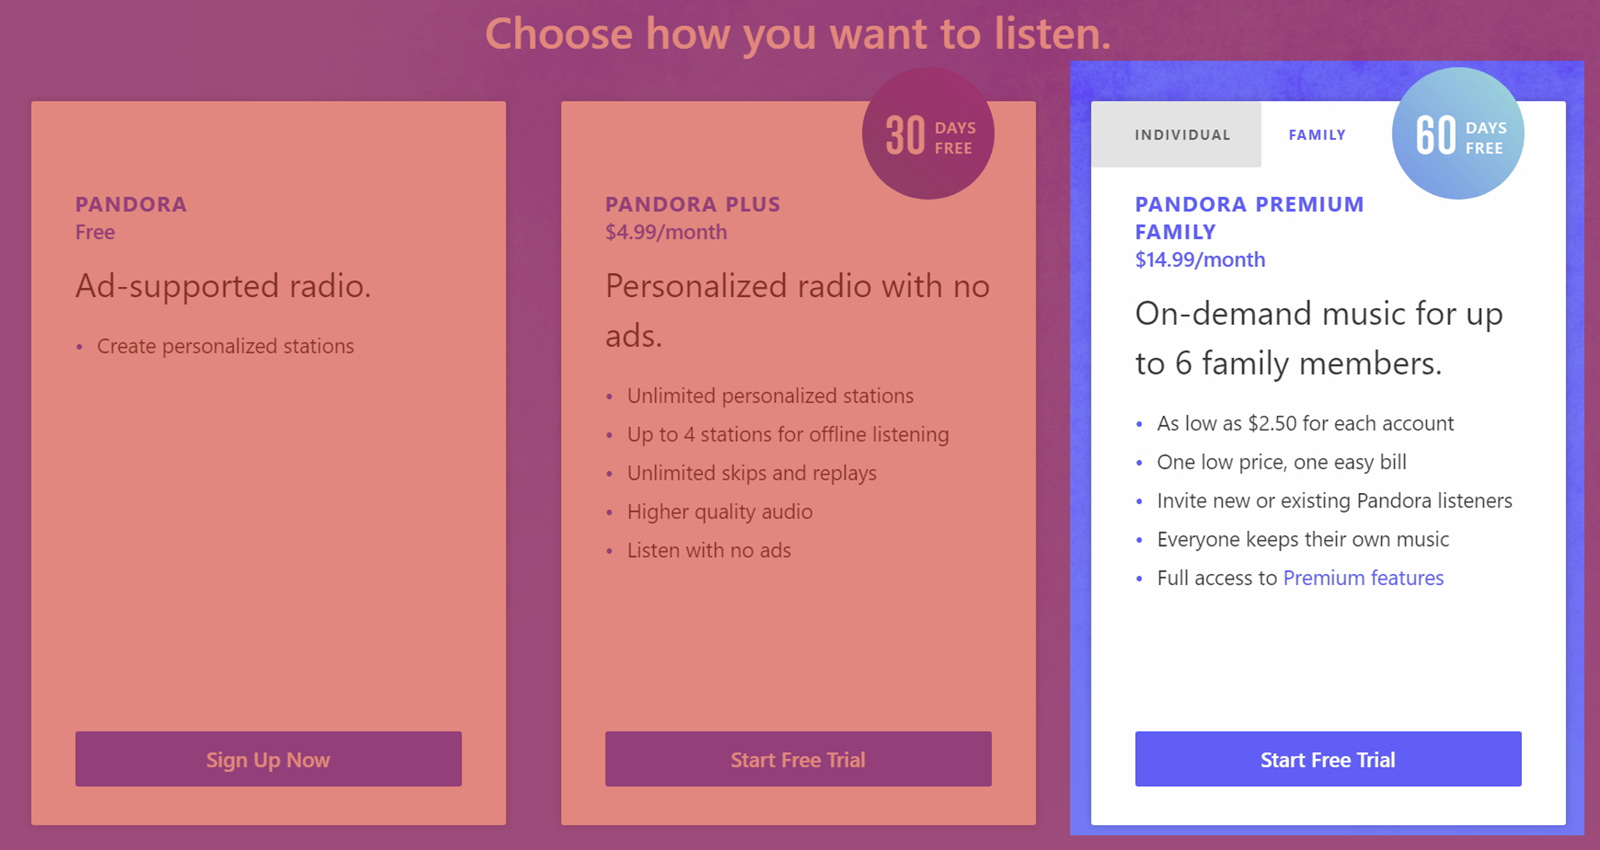 Pandora Quietly Launches a 'Premium Family' Plan | iPhone in